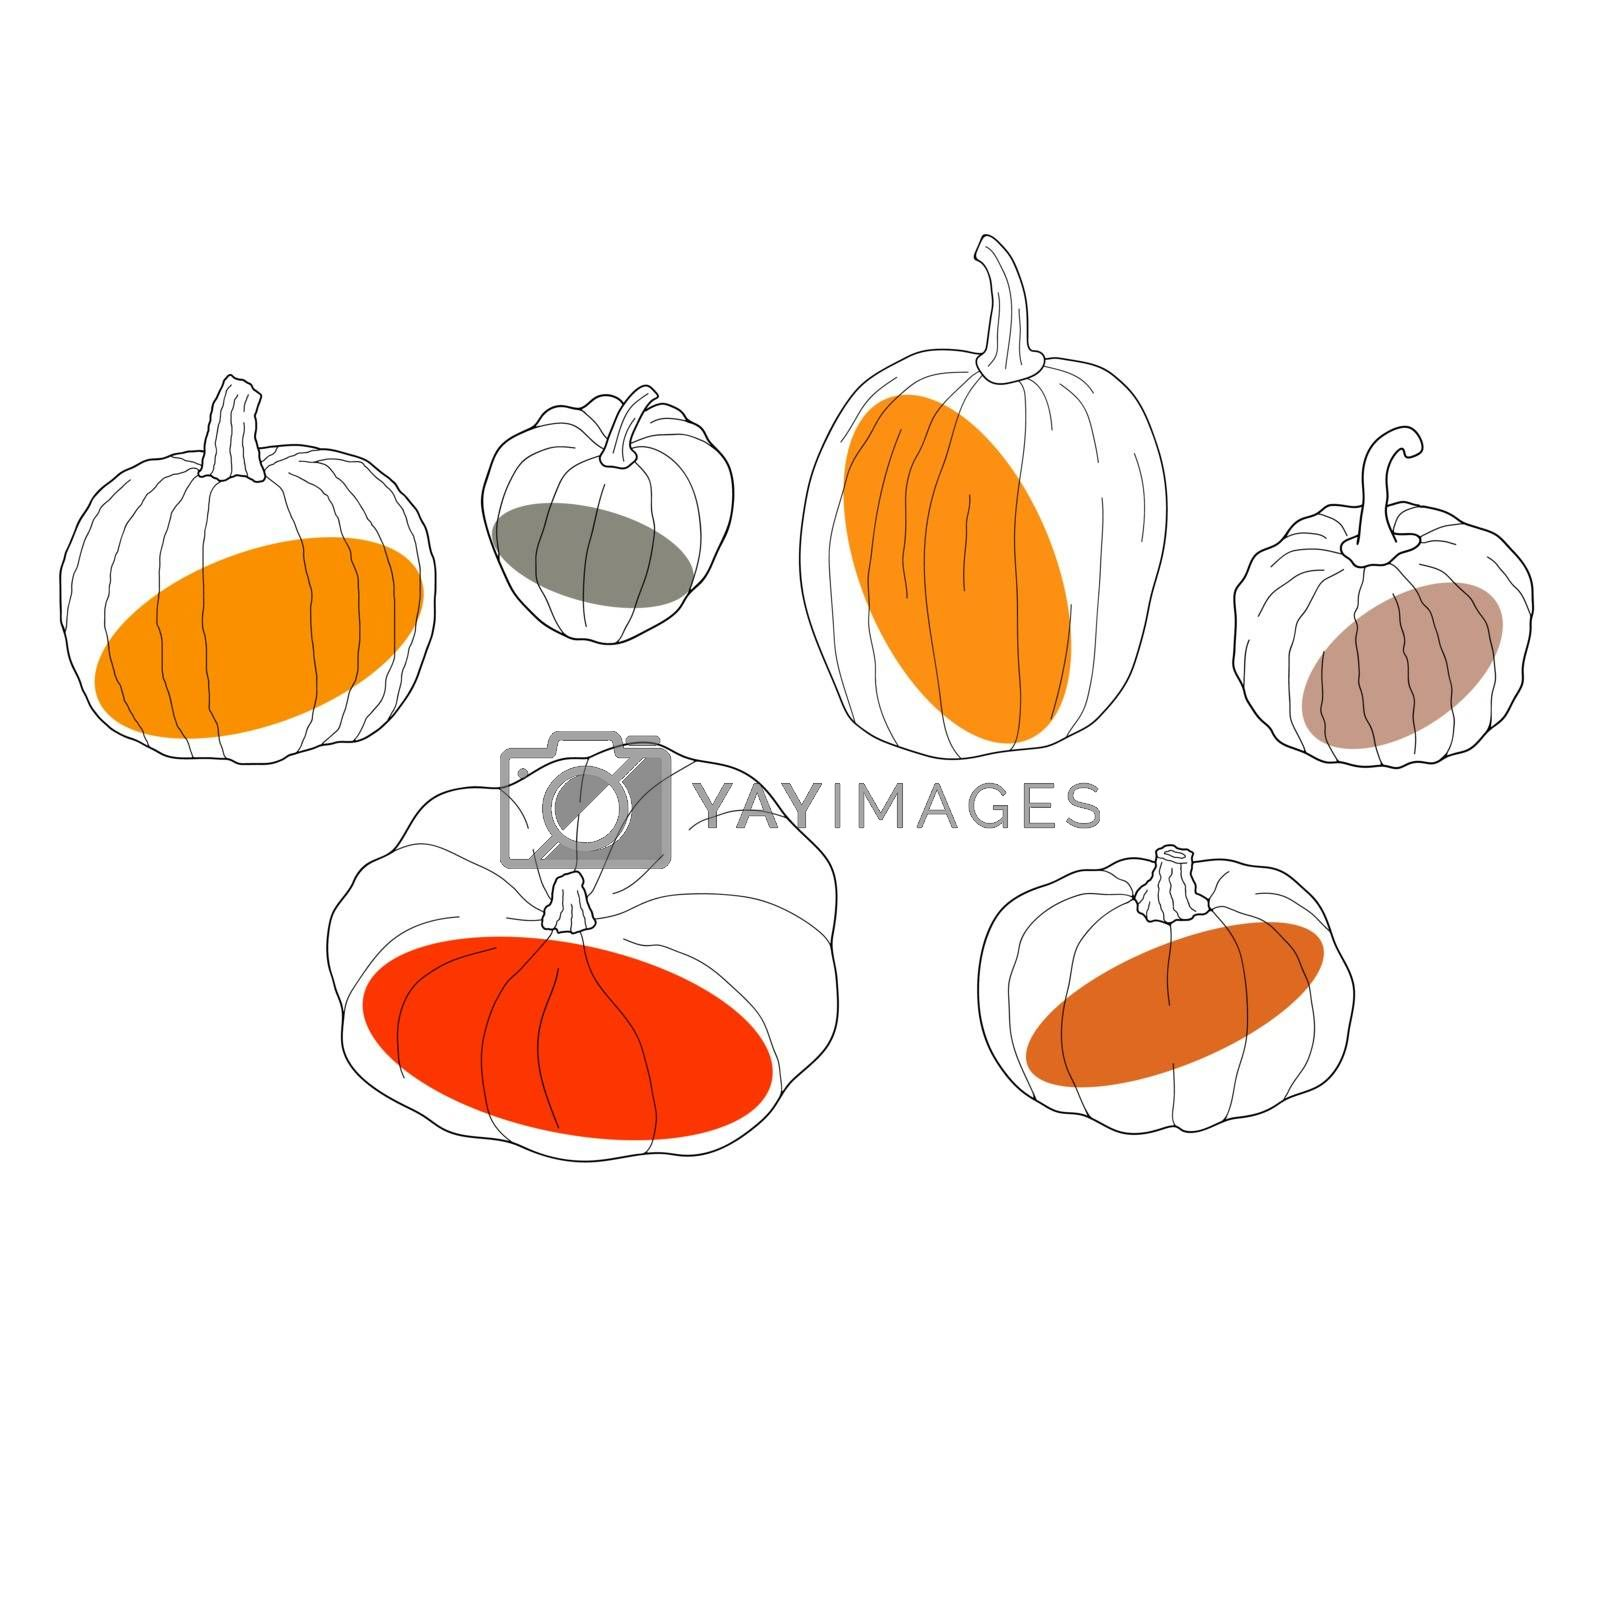 Pumpkin transparent set. Vector illustration isolated on white background. Healthy vegetarian food. Doodle style. Decoration for greeting cards, posters, patches, prints for clothes, emblems.